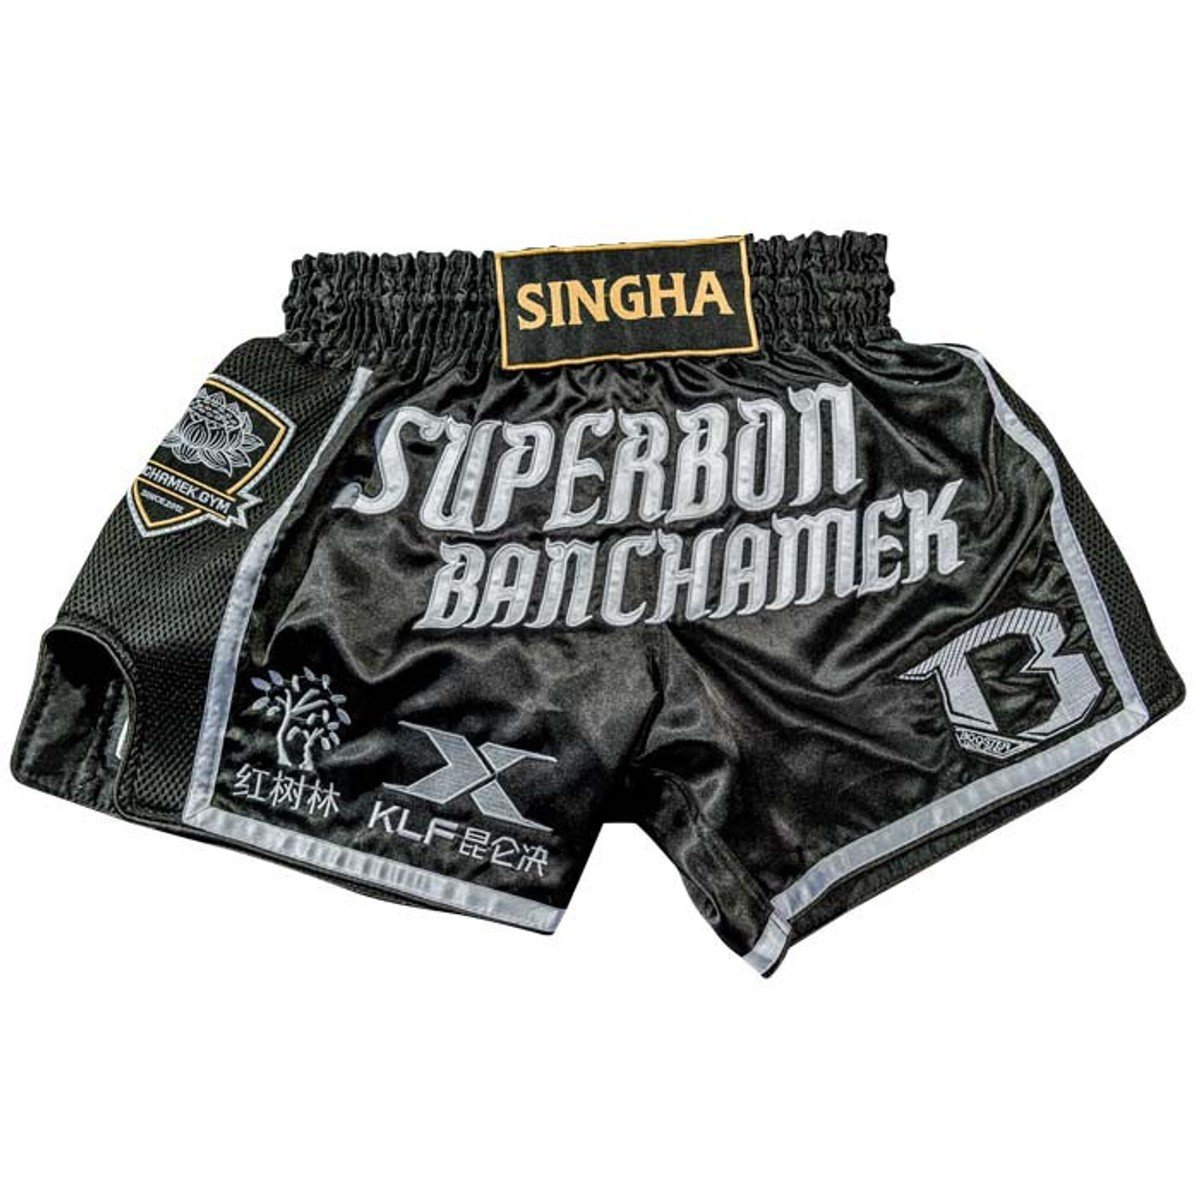 Booster Muay Thai Shorts, Superbon Signature, Shin Guards, Muay Thai Größe M